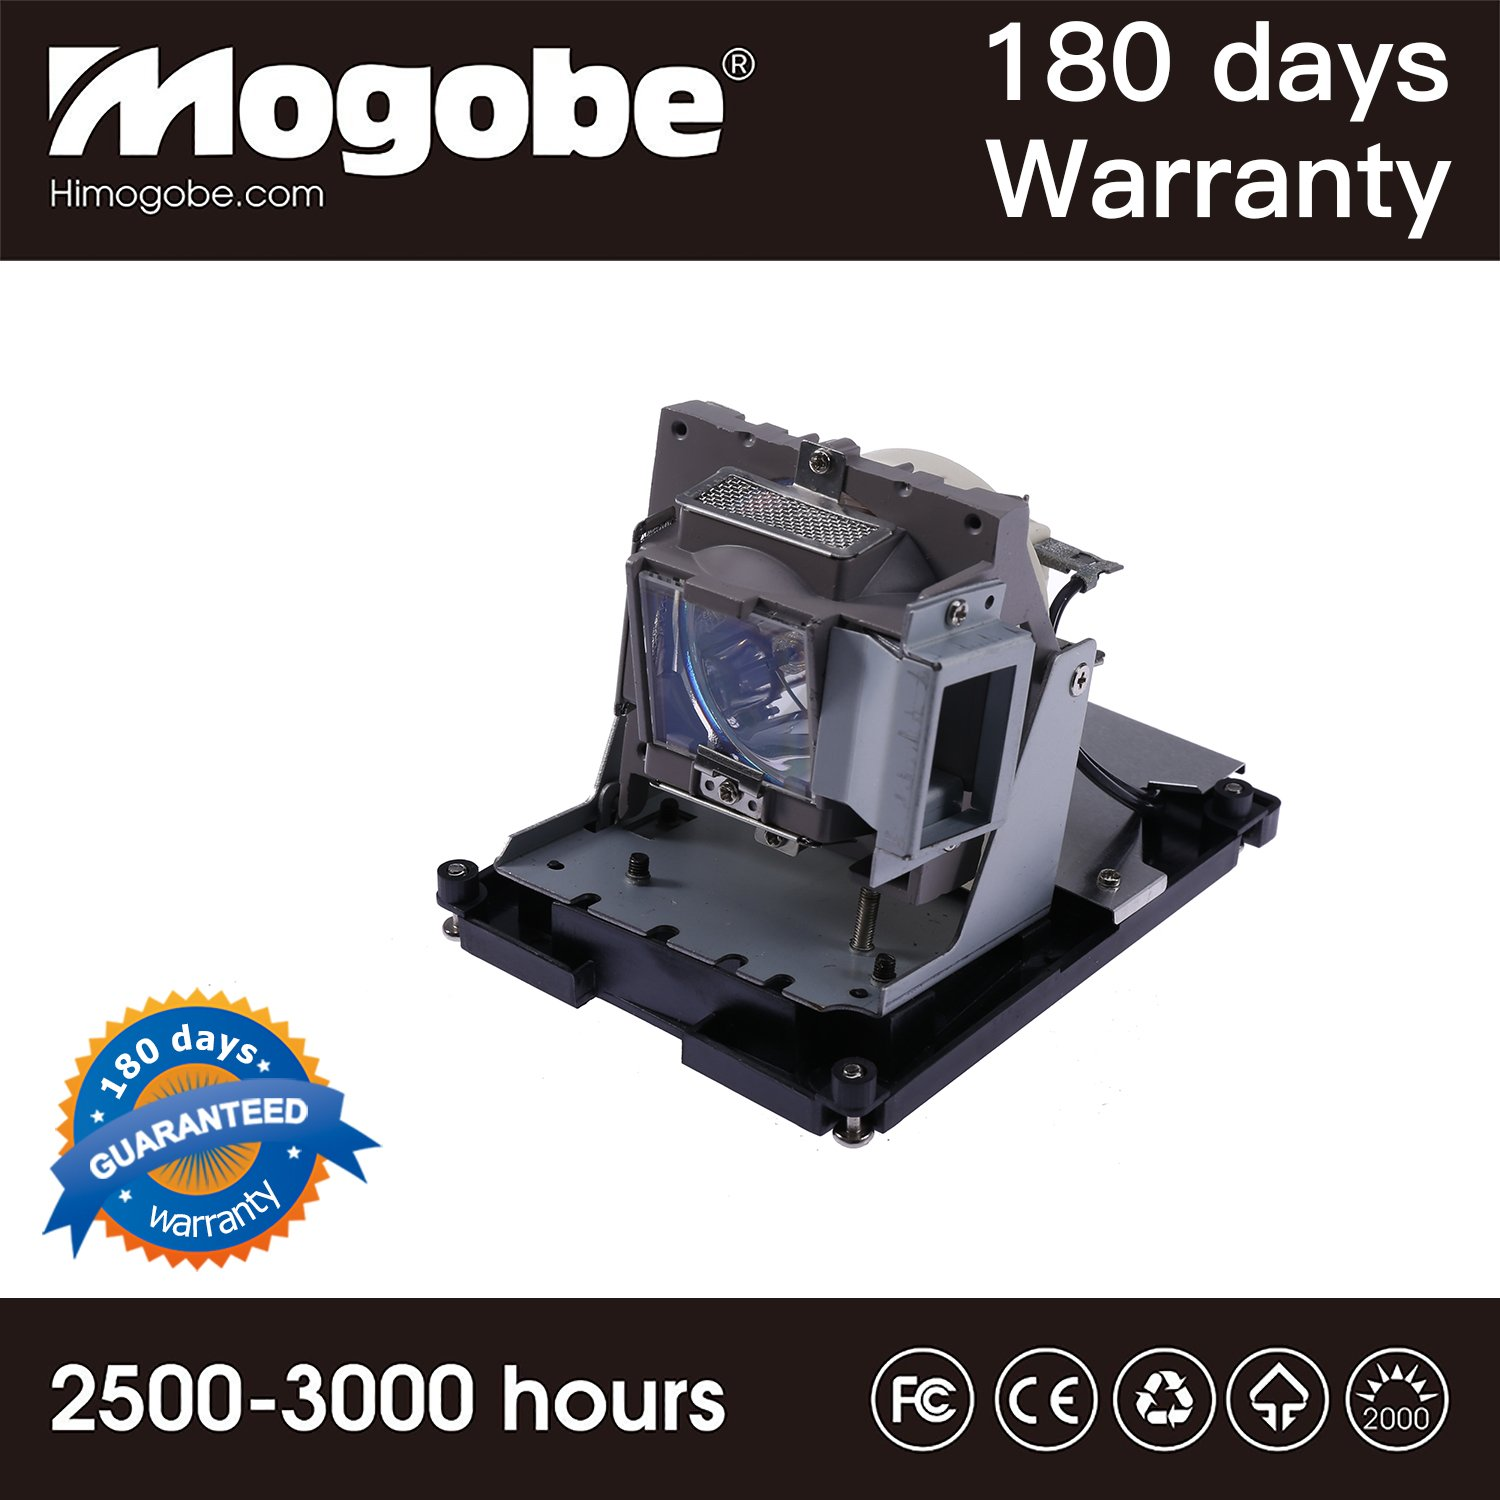 For Bl-FU310B Repalcement Projector Lamp with Housing for OPTOMA DH1017 OPTOMA EH500 OPTOMA X600 by Mogobe